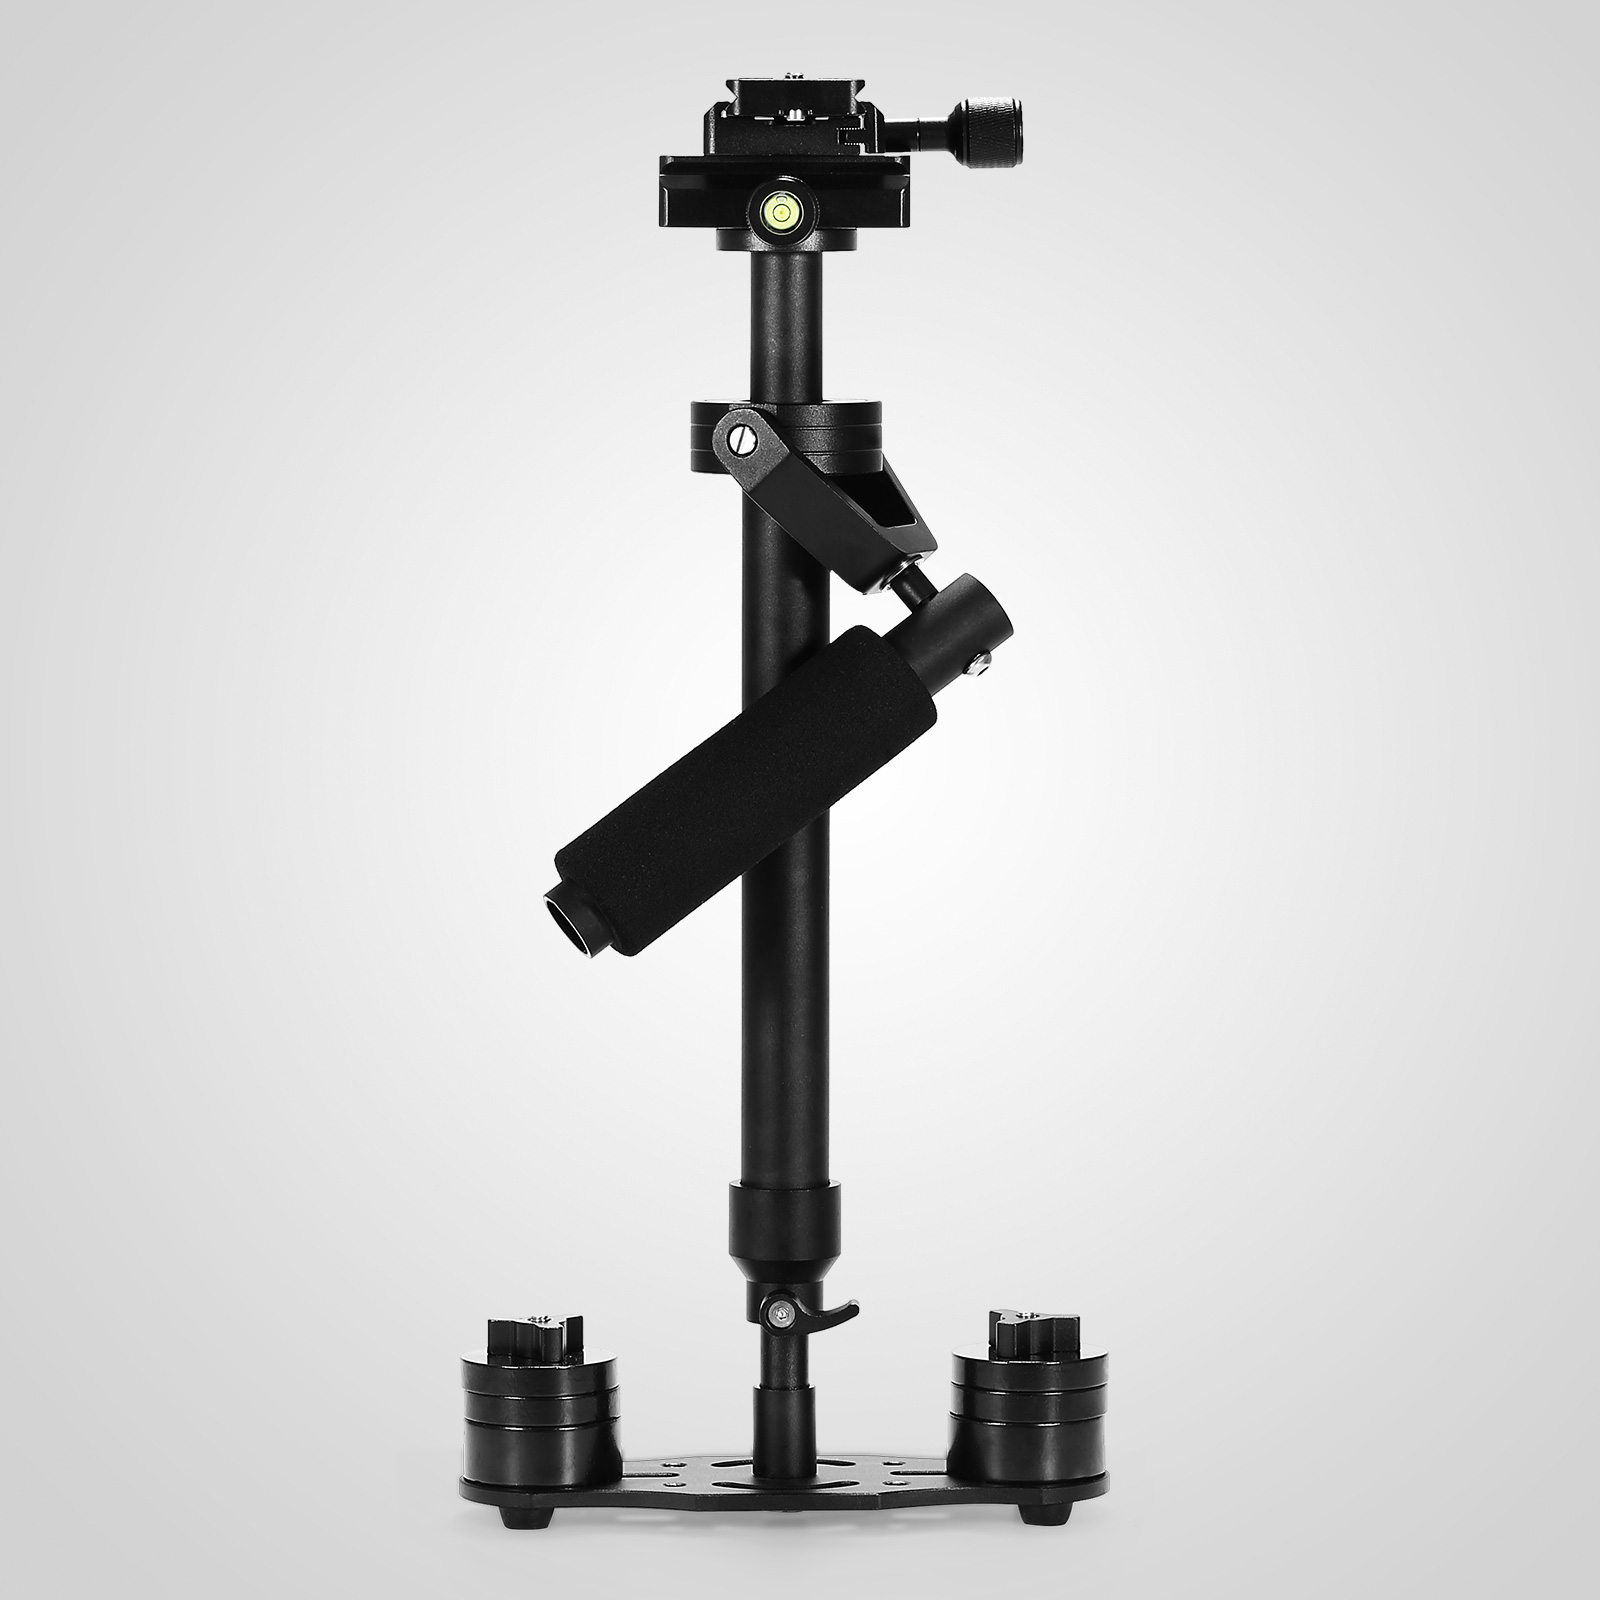 S60T-S60N-Handheld-Steady-Stabilizer-360-For-DSLR-Canon-Camera thumbnail 15